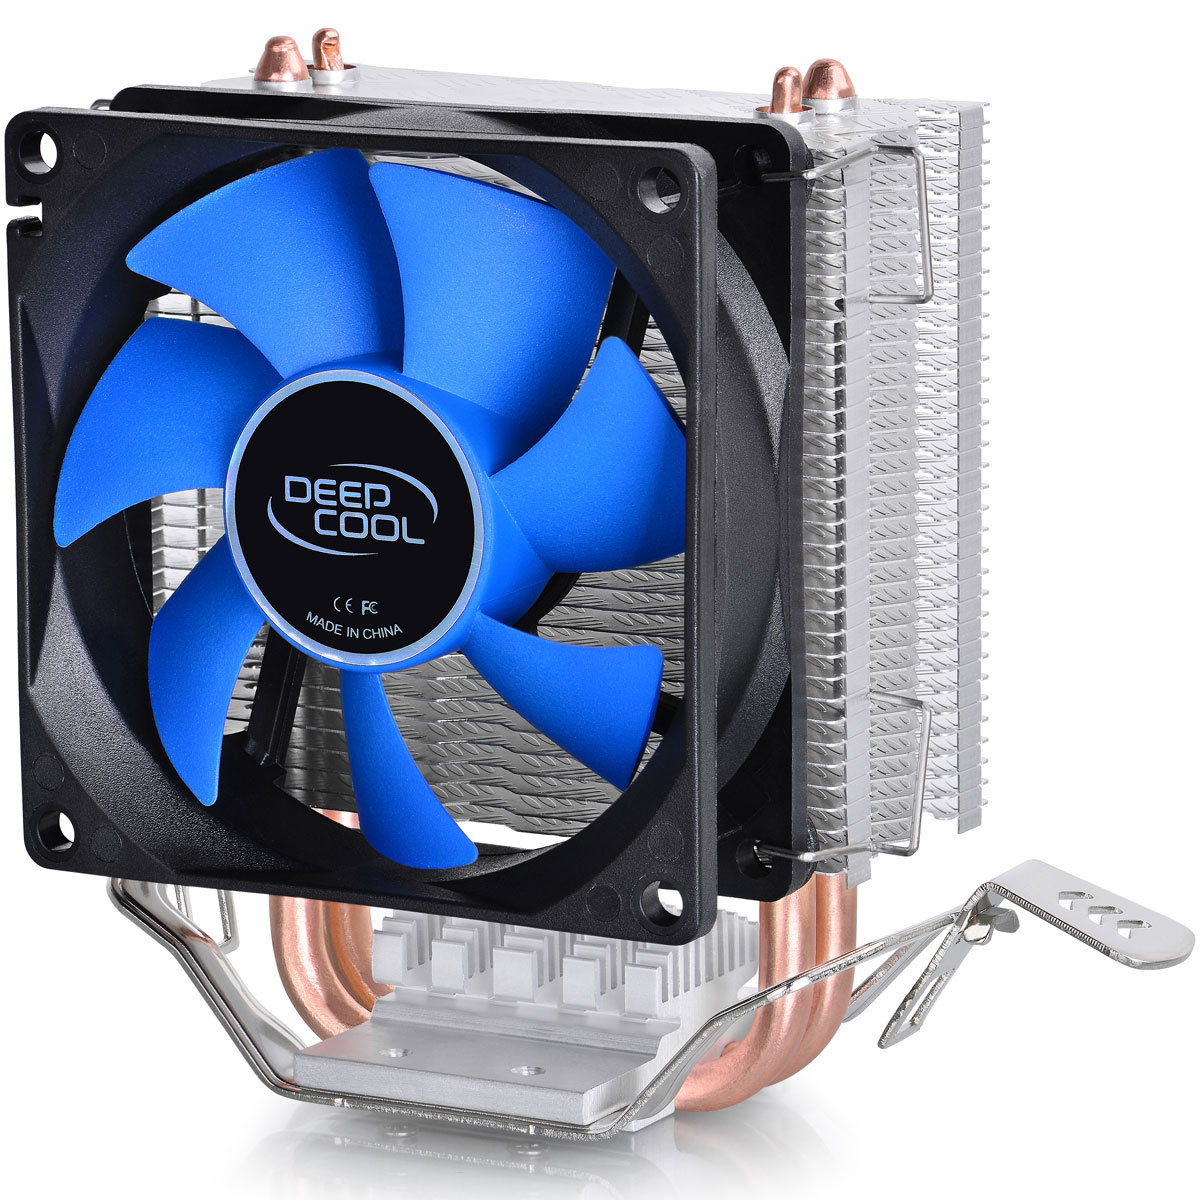 Deepcool Ice Edge Mini FS V2.0 кулер компьютерный кулер deepcool iceedge 400 fs